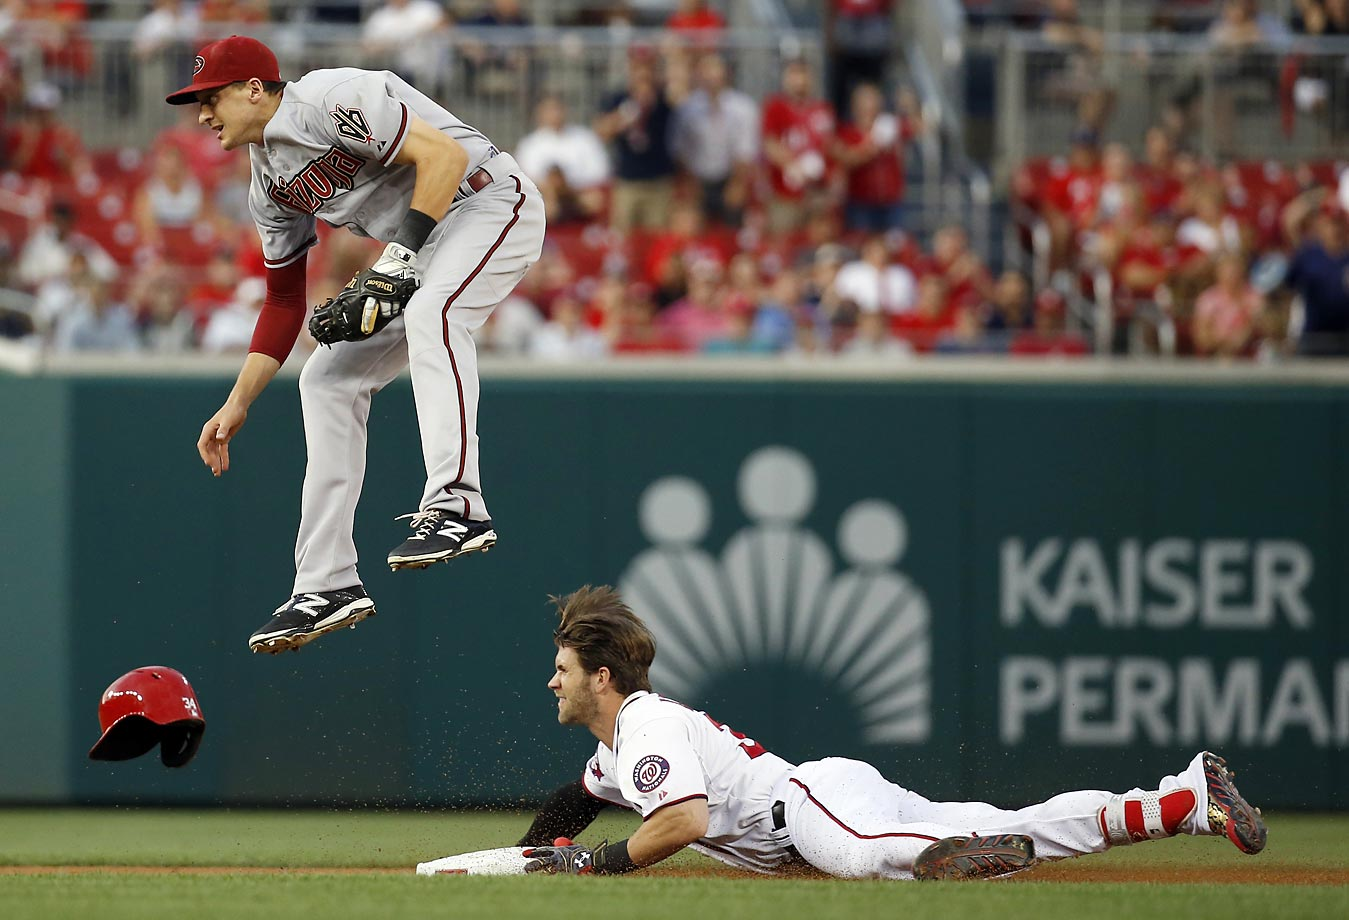 Bryce Harper of the Washington Nationals slides in safe under Nick Ahmed of the Arizona Diamondbacks.